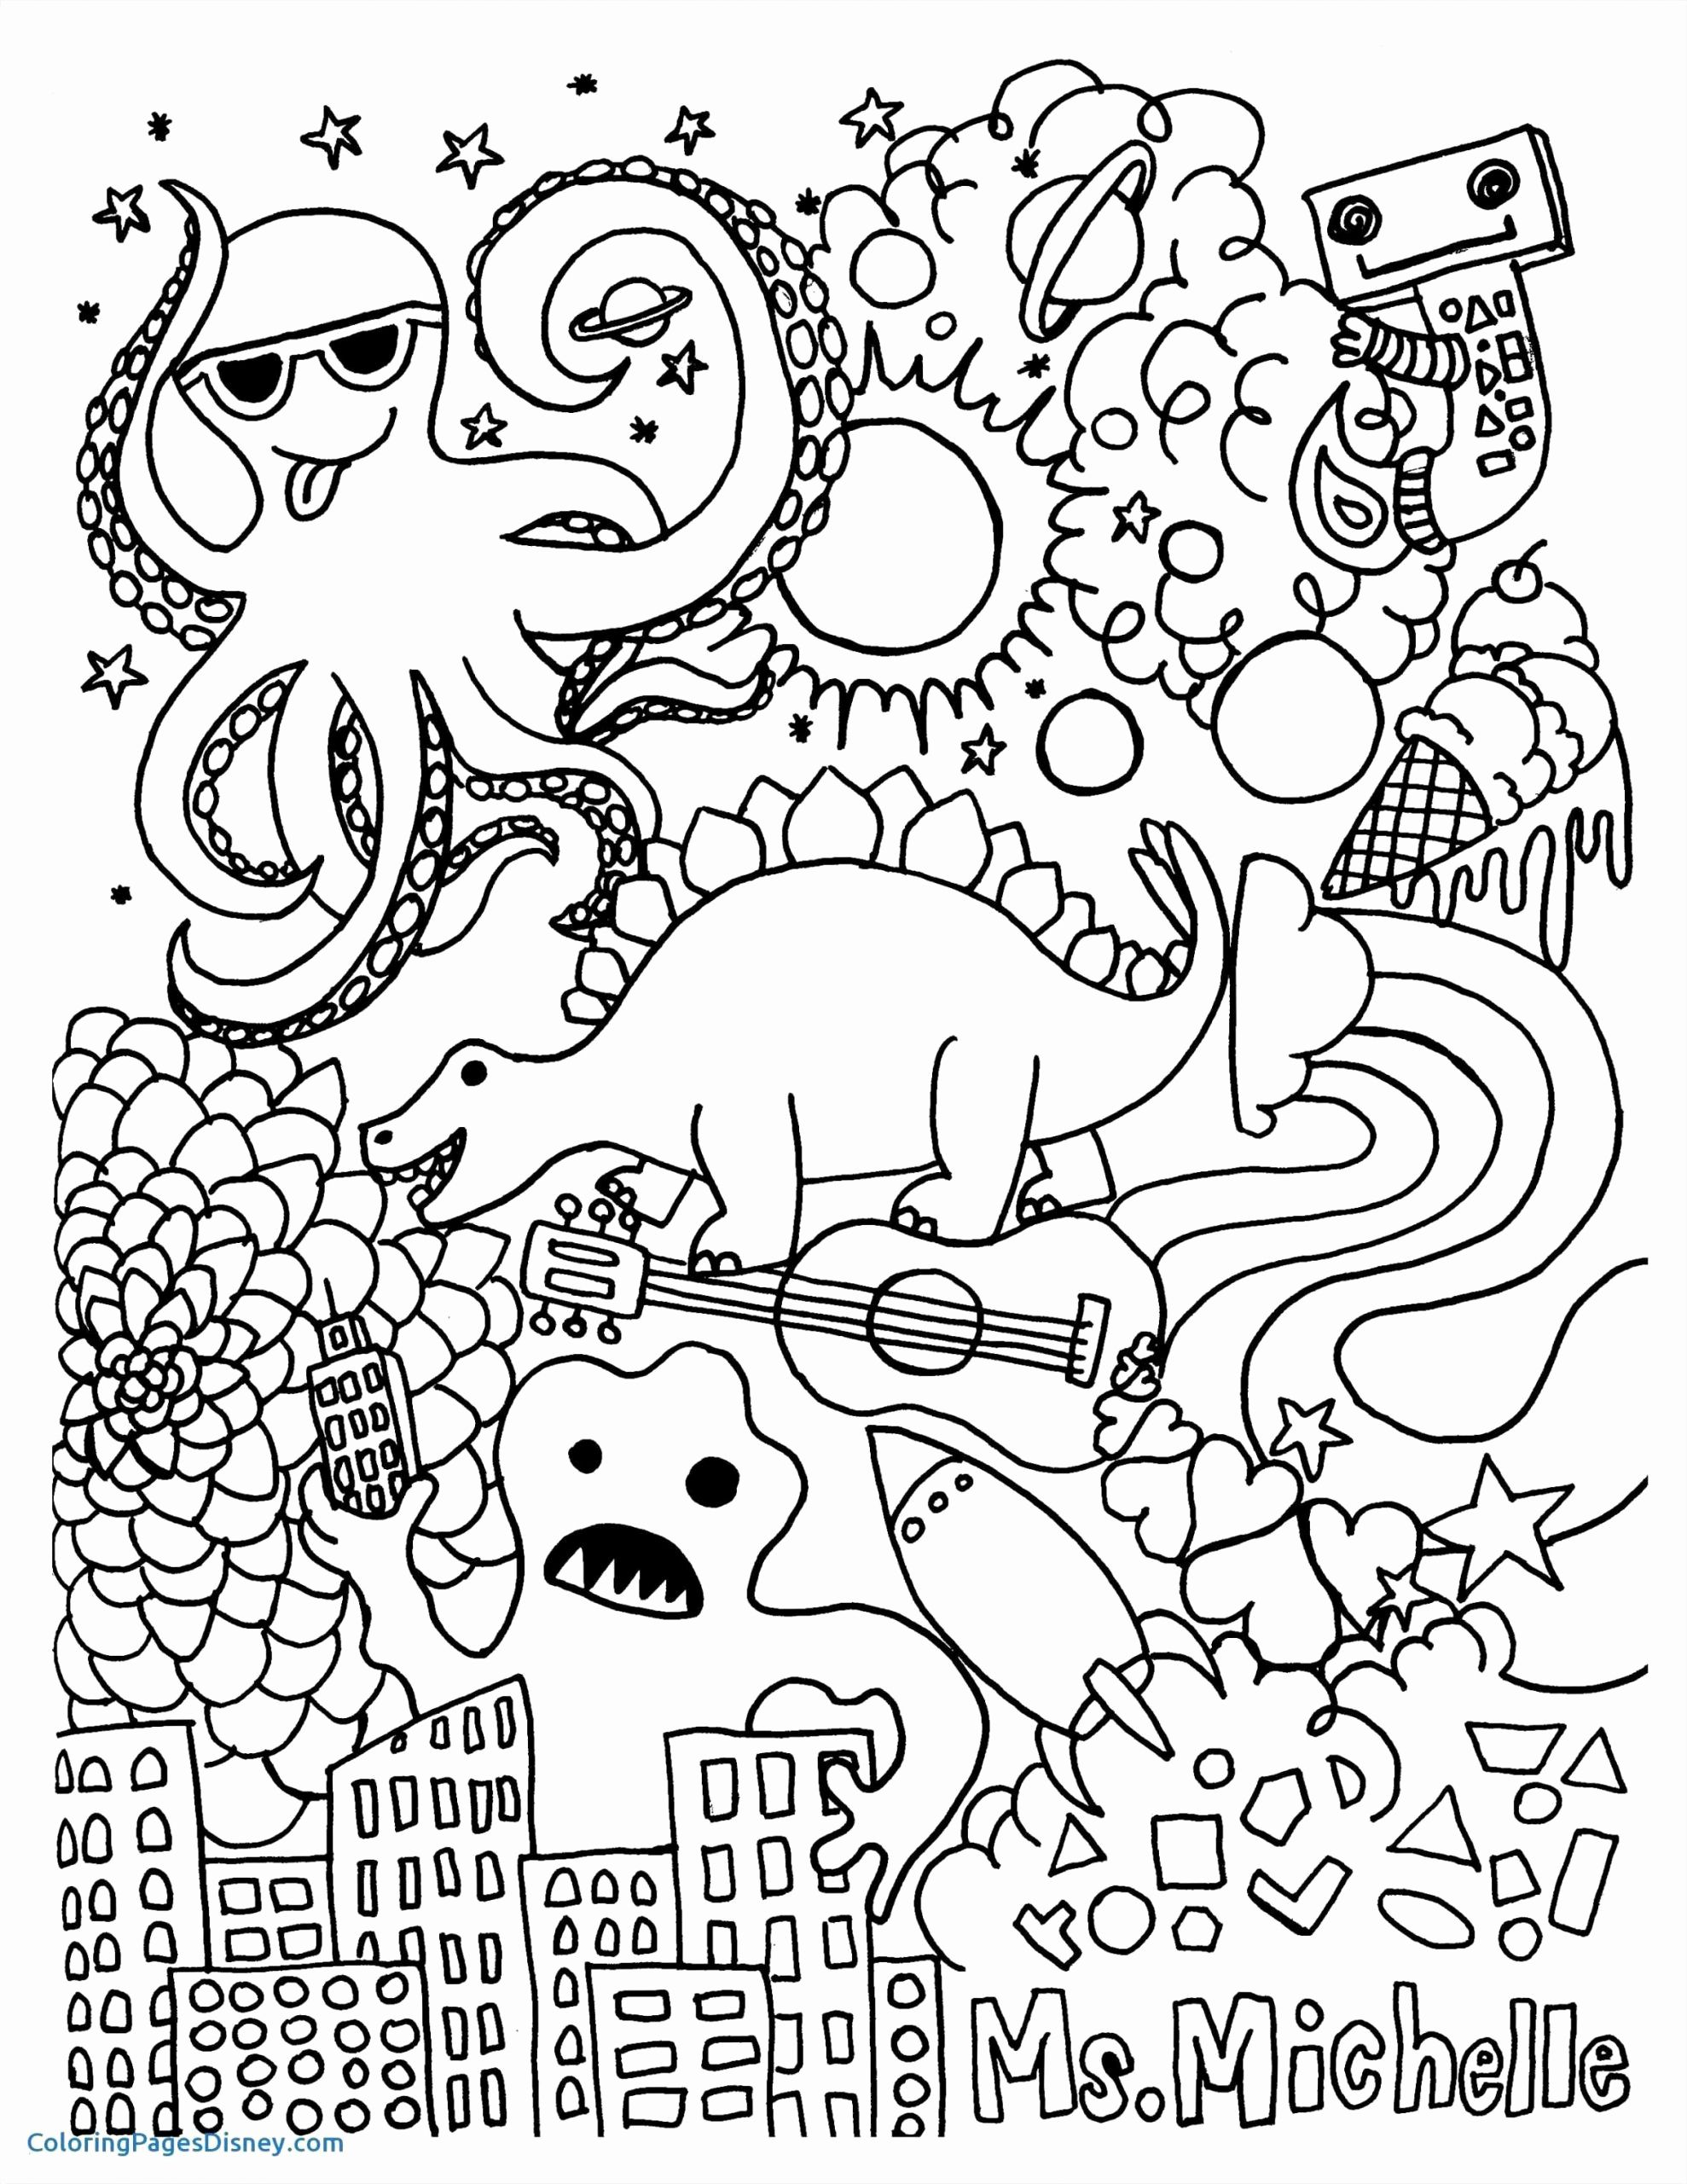 Lisa Frank Animal Coloring Pages For Kids To Print Out Coloring Pages Inspirational Mandala Coloring Pages Coloring Books